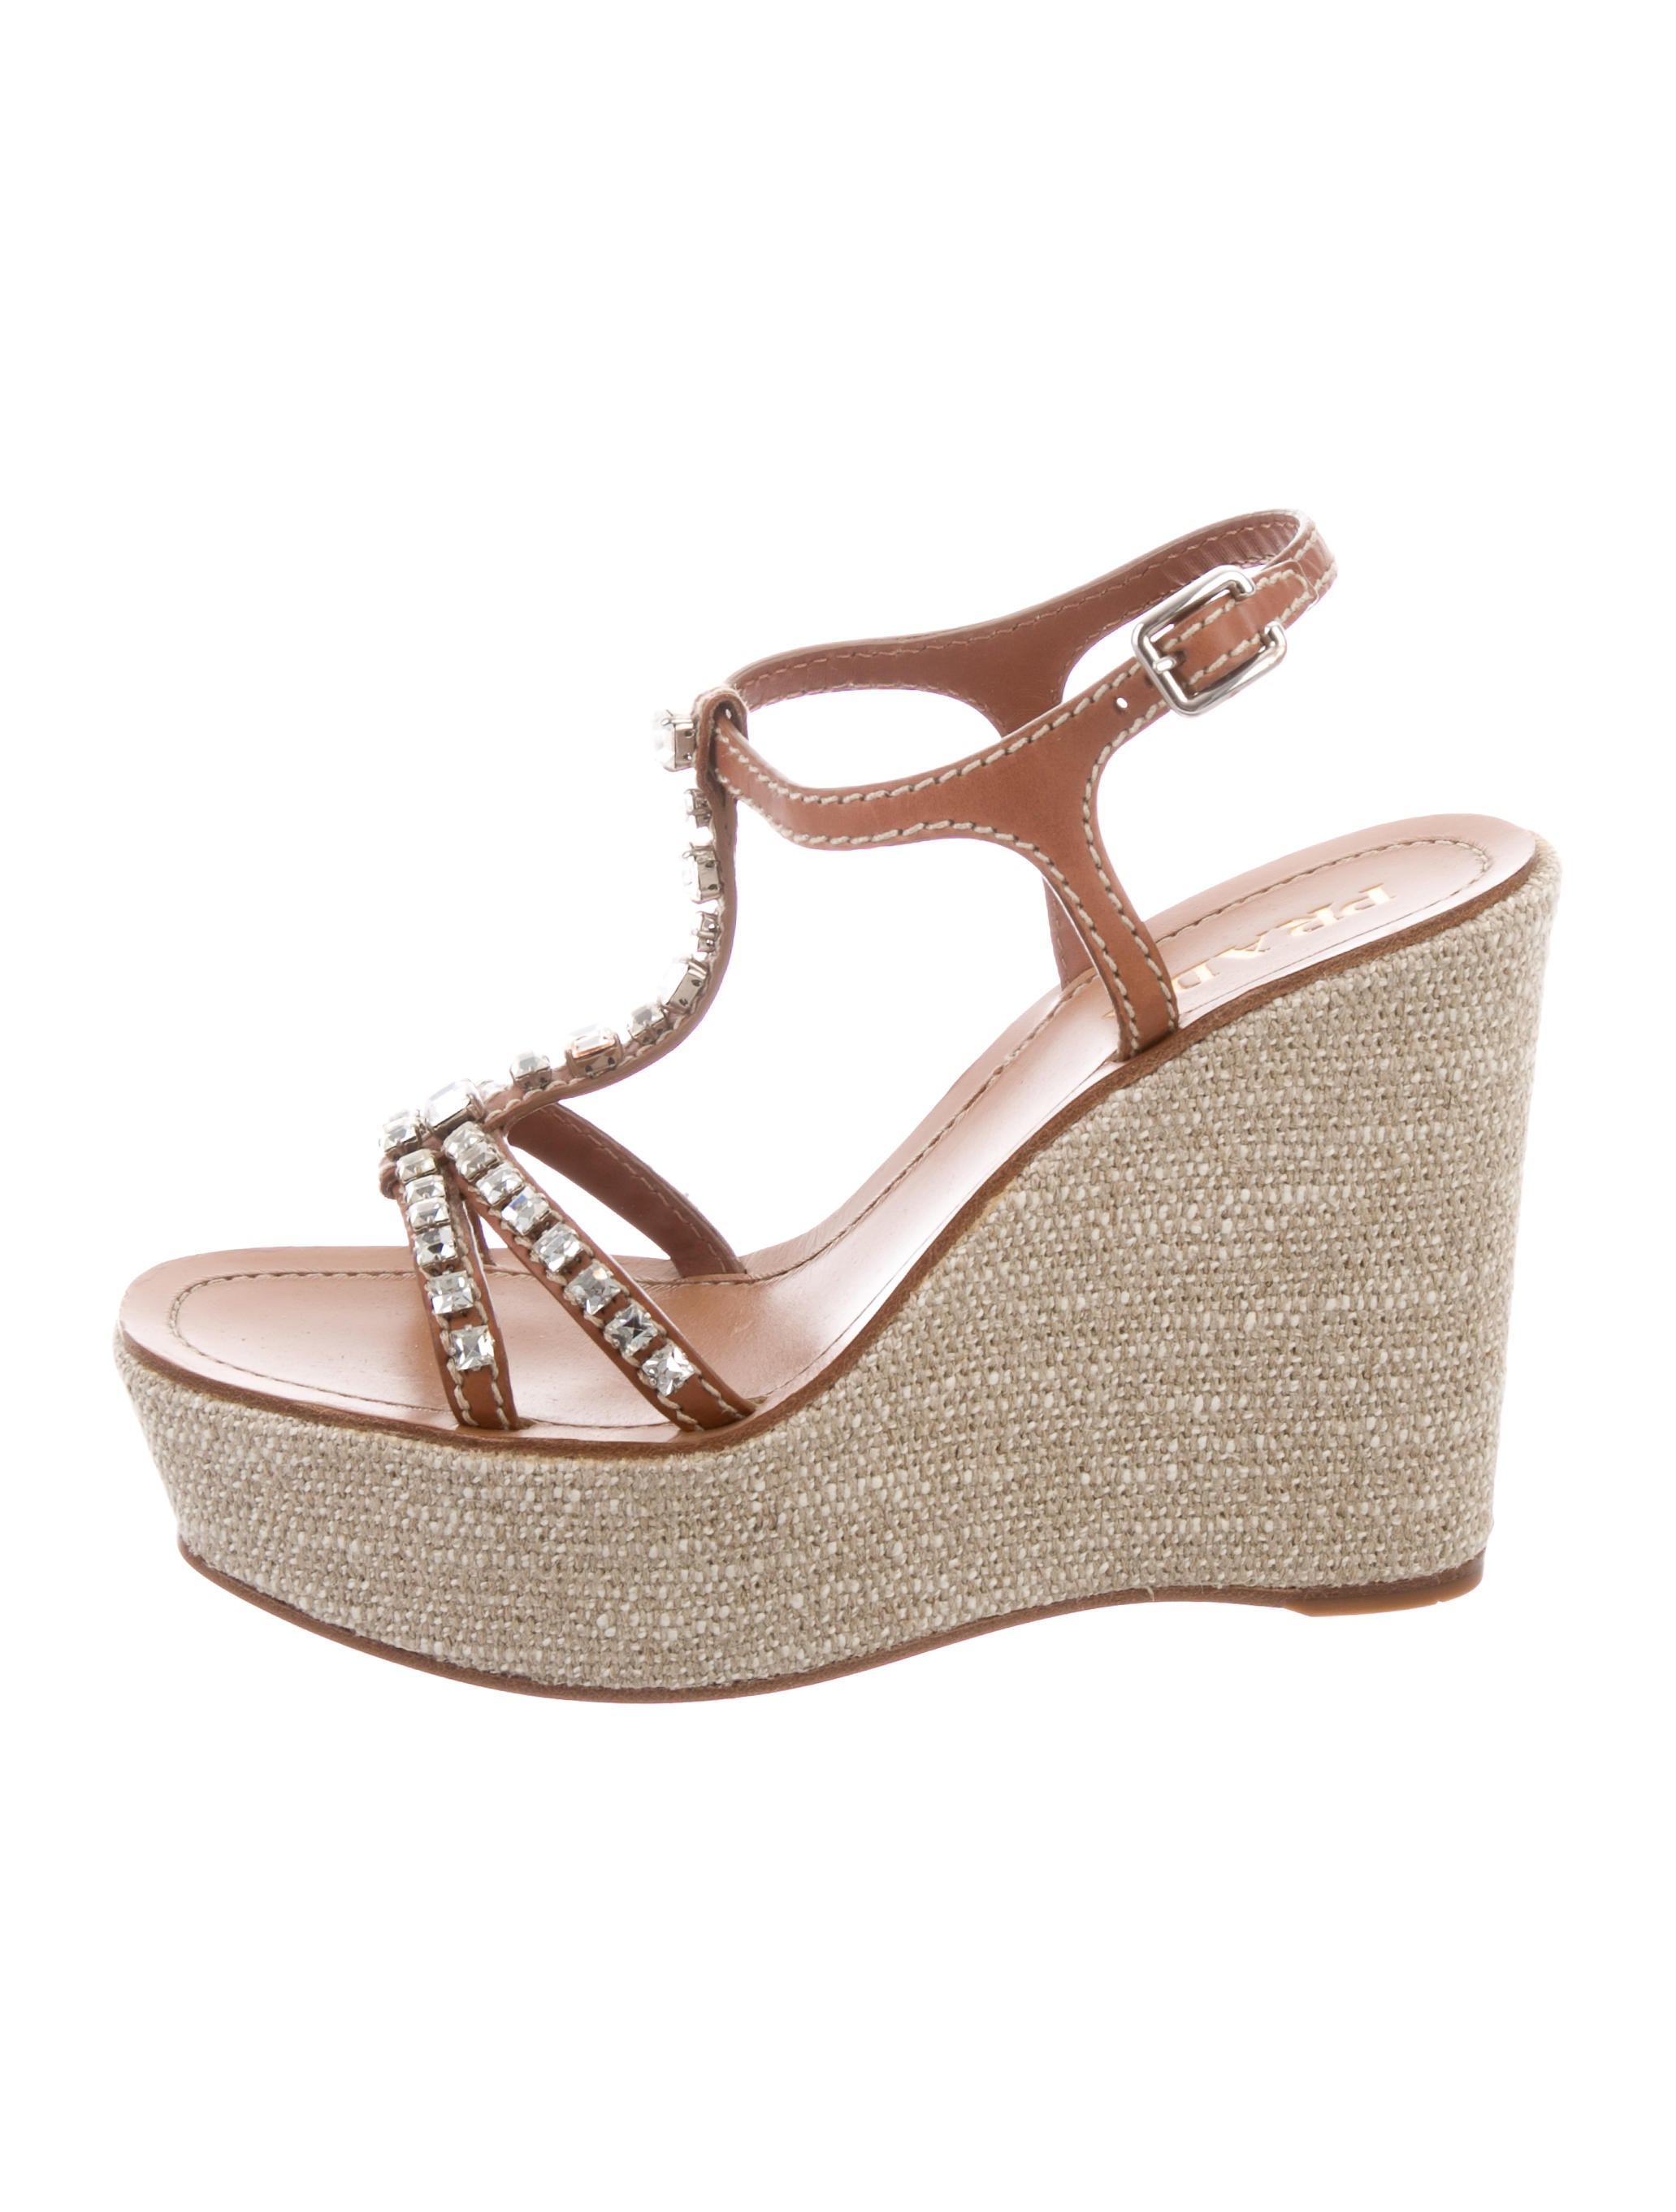 free shipping footlocker Prada Jewel-Embellished Leather Wedges free shipping best place find great affordable for sale 7SwRjT